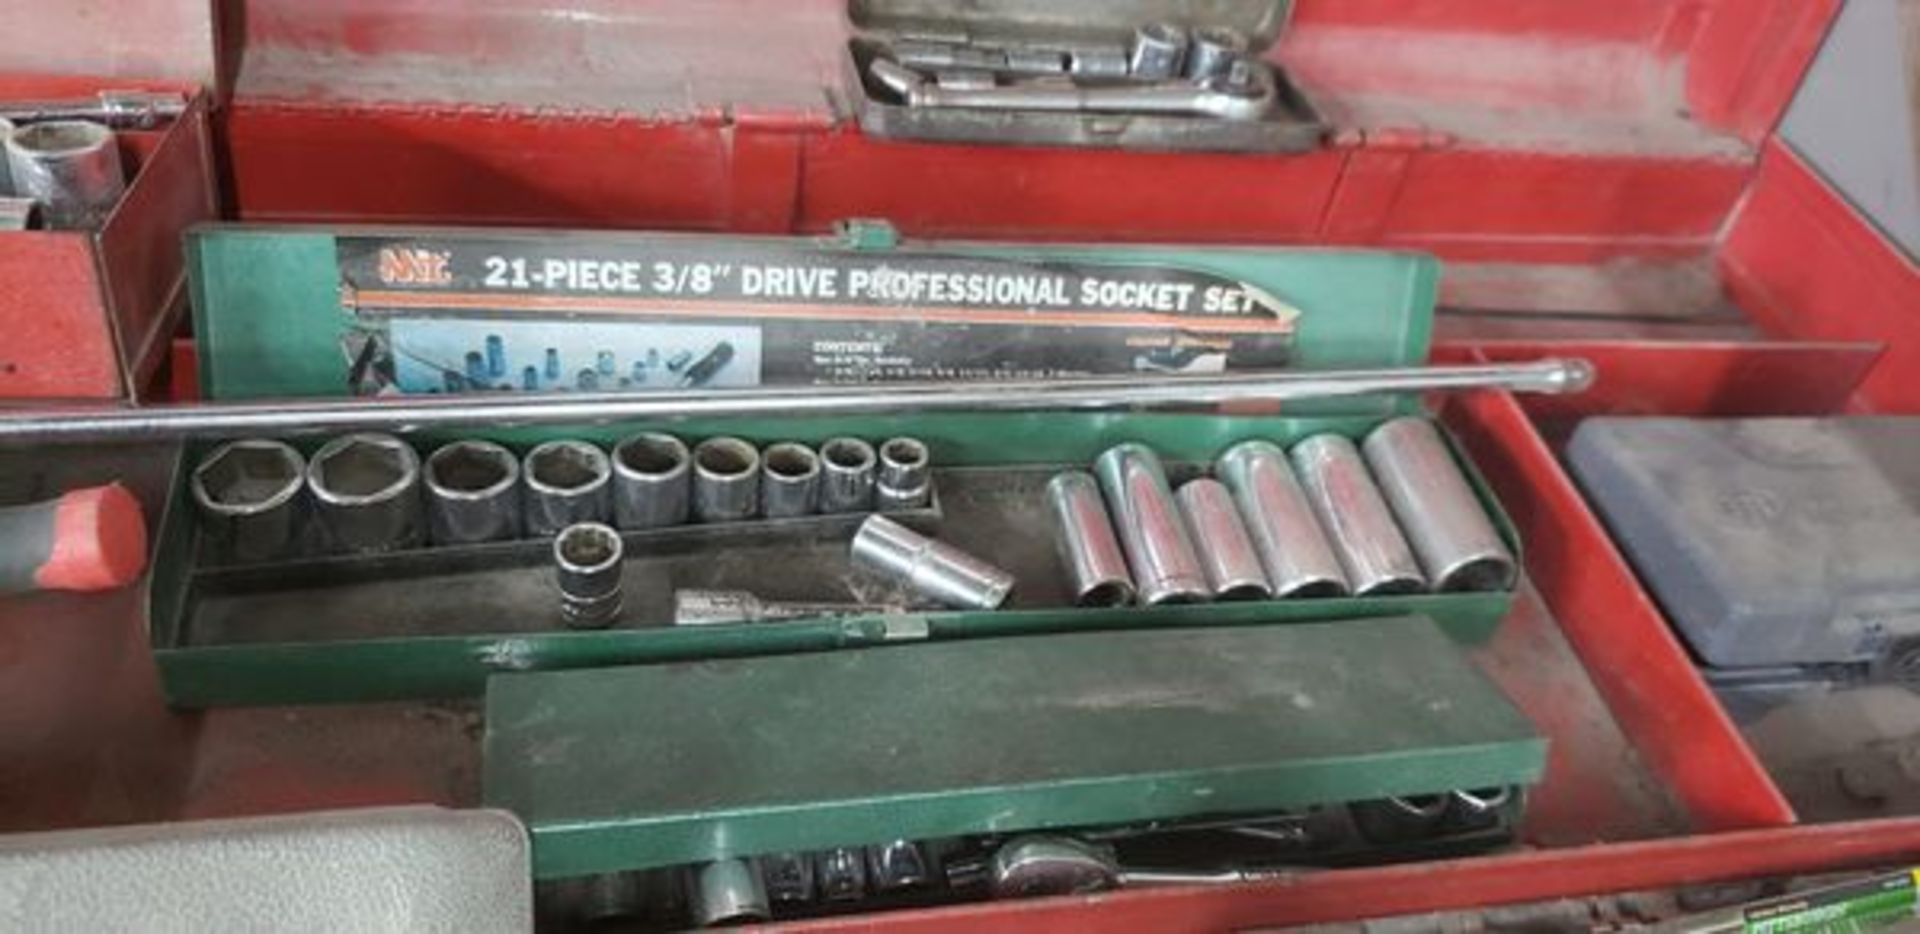 ASSORTED SOCKET SETS WITH EXTRAS - Image 2 of 8